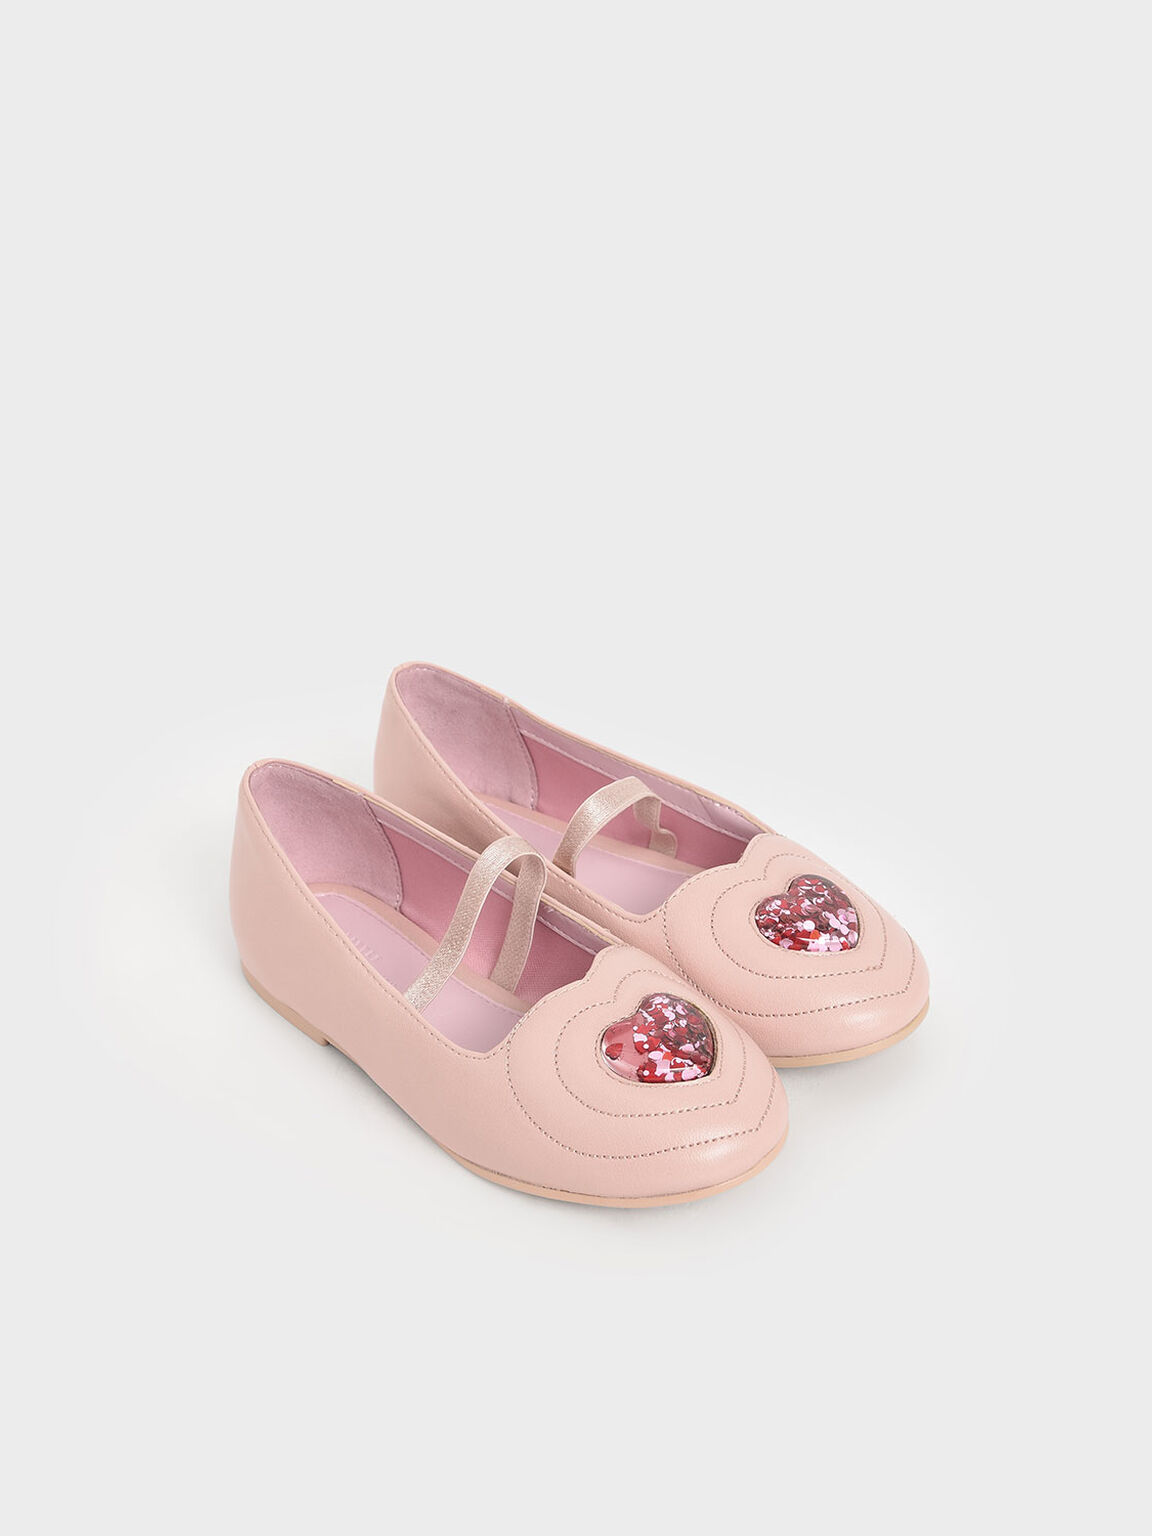 Girls' Sequin Heart Ballerina Flats, Nude, hi-res